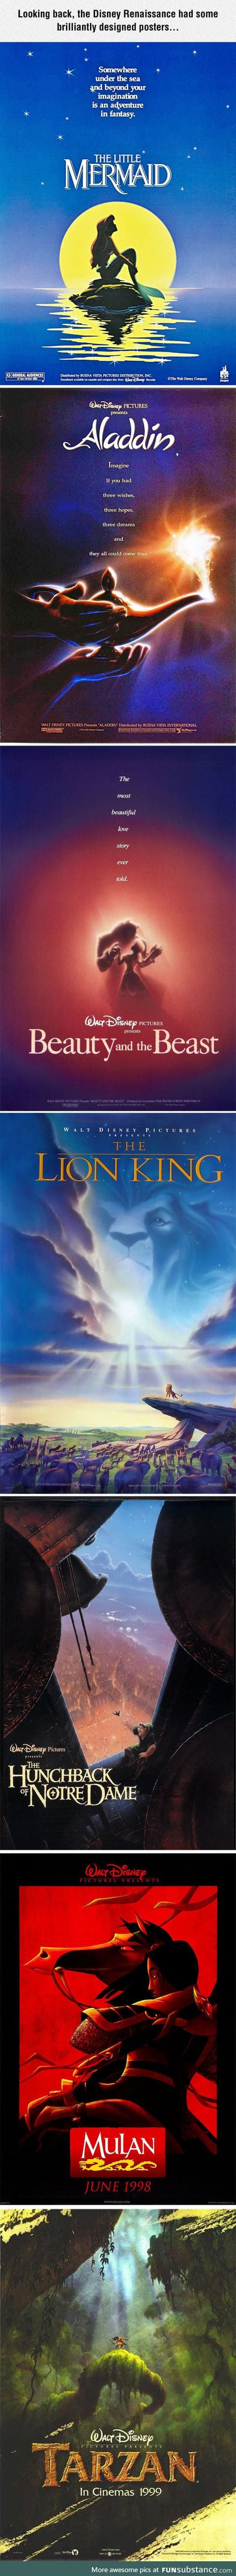 Disney's Old Posters Were The Best